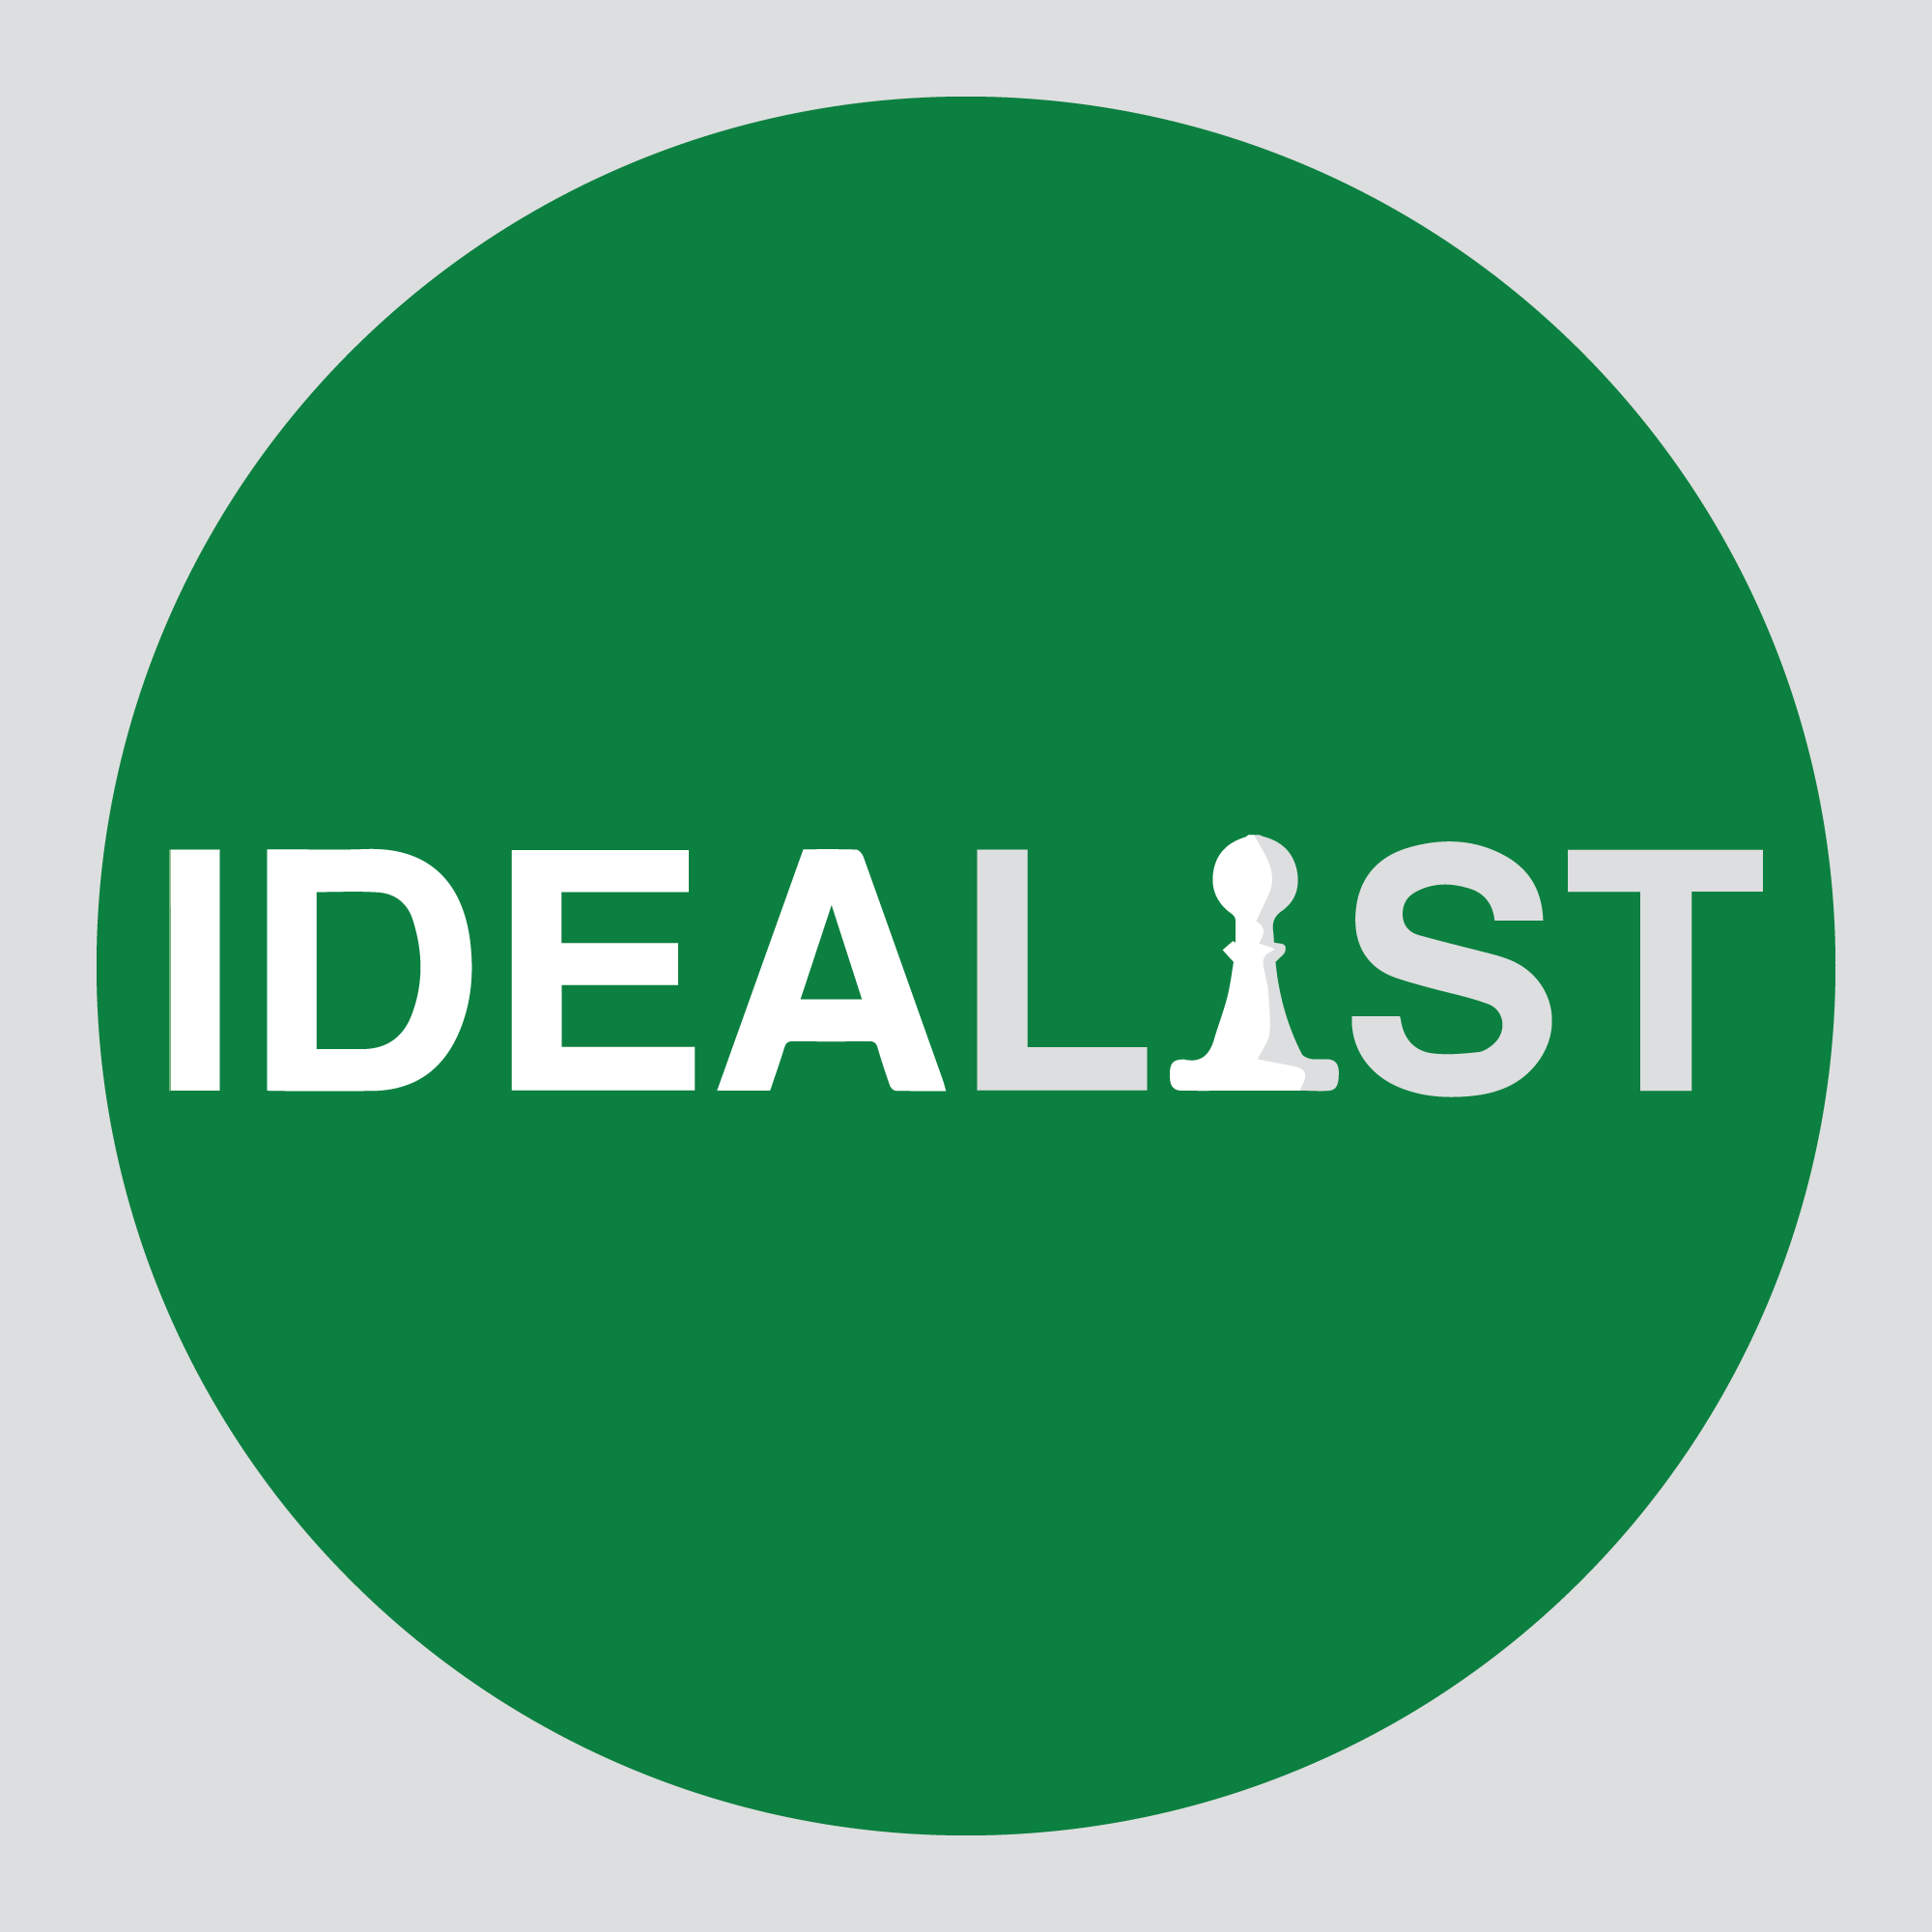 idealist-logo-featured-image